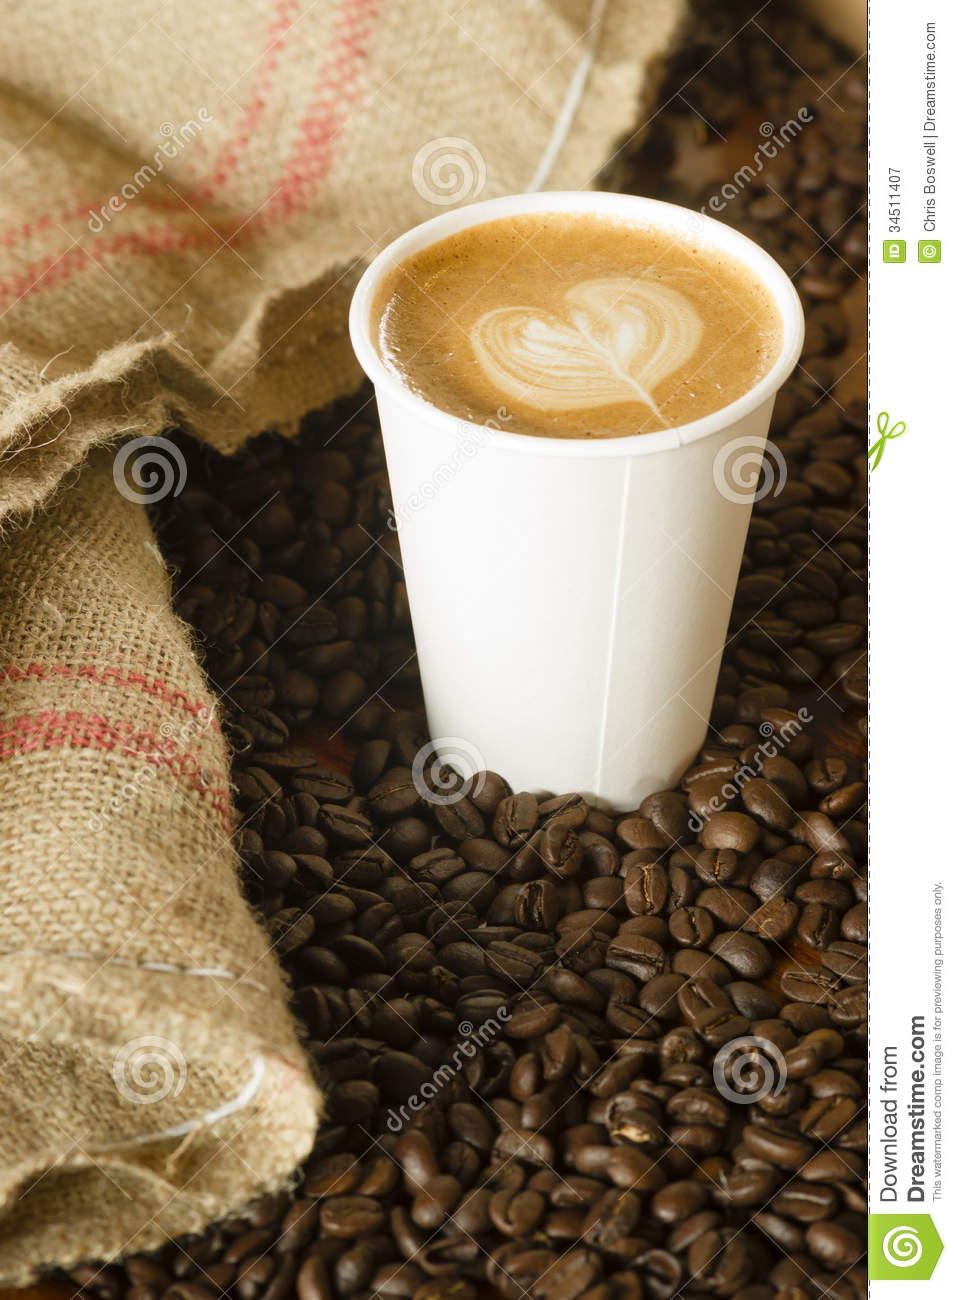 cappuccino to go paper cup burlap bag roasted coffee beans stock image image of fresh burlap. Black Bedroom Furniture Sets. Home Design Ideas